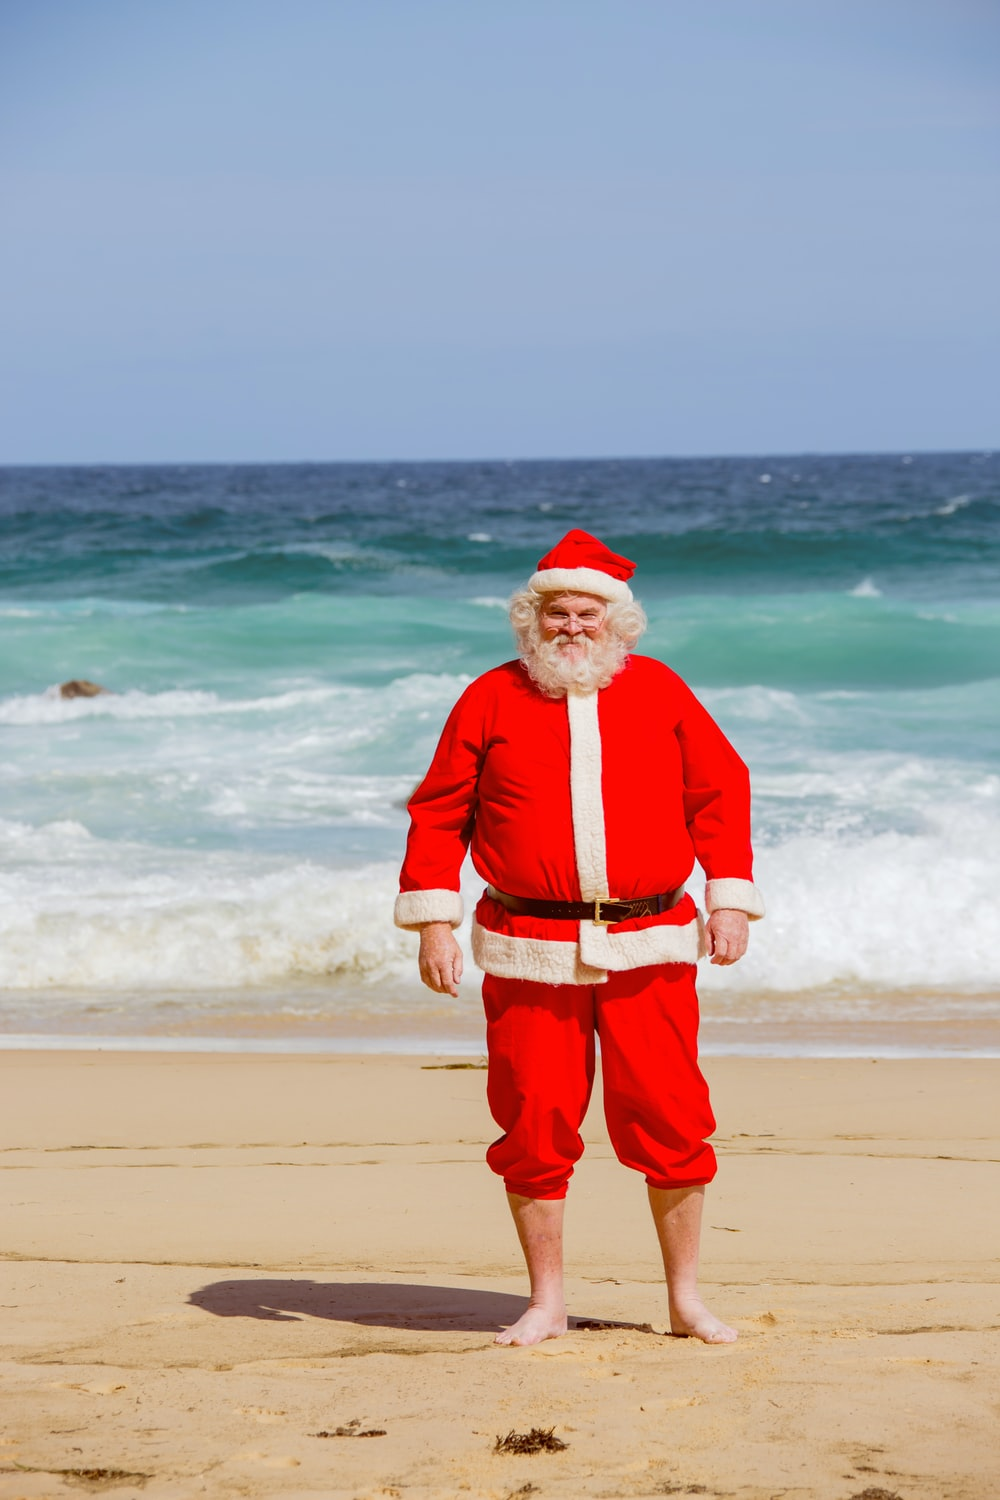 man in red santa claus costume standing on beach shore during daytime